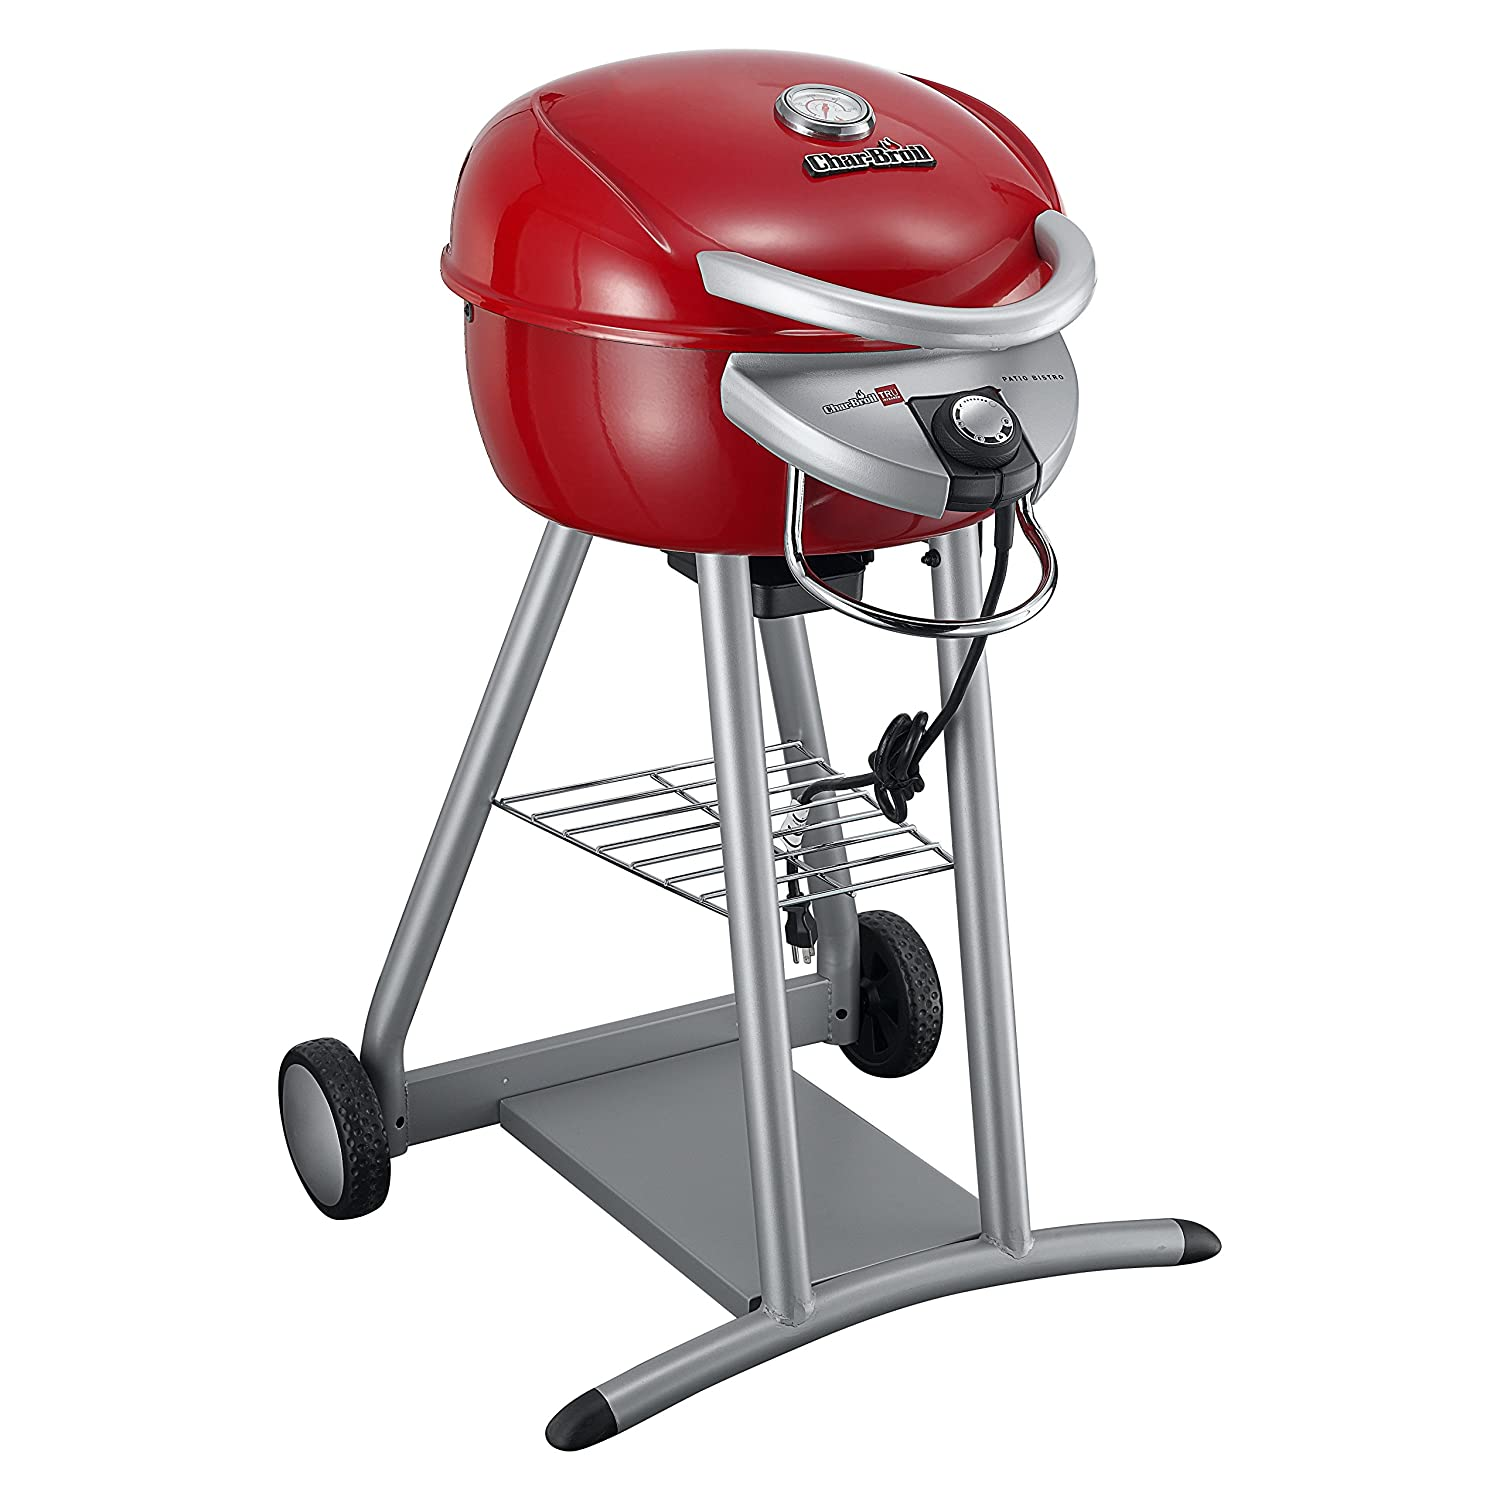 Grill Electric Outdoor Indoor Cooking Kitchen Garden Patio ... on Outdoor Grill Patio id=45491